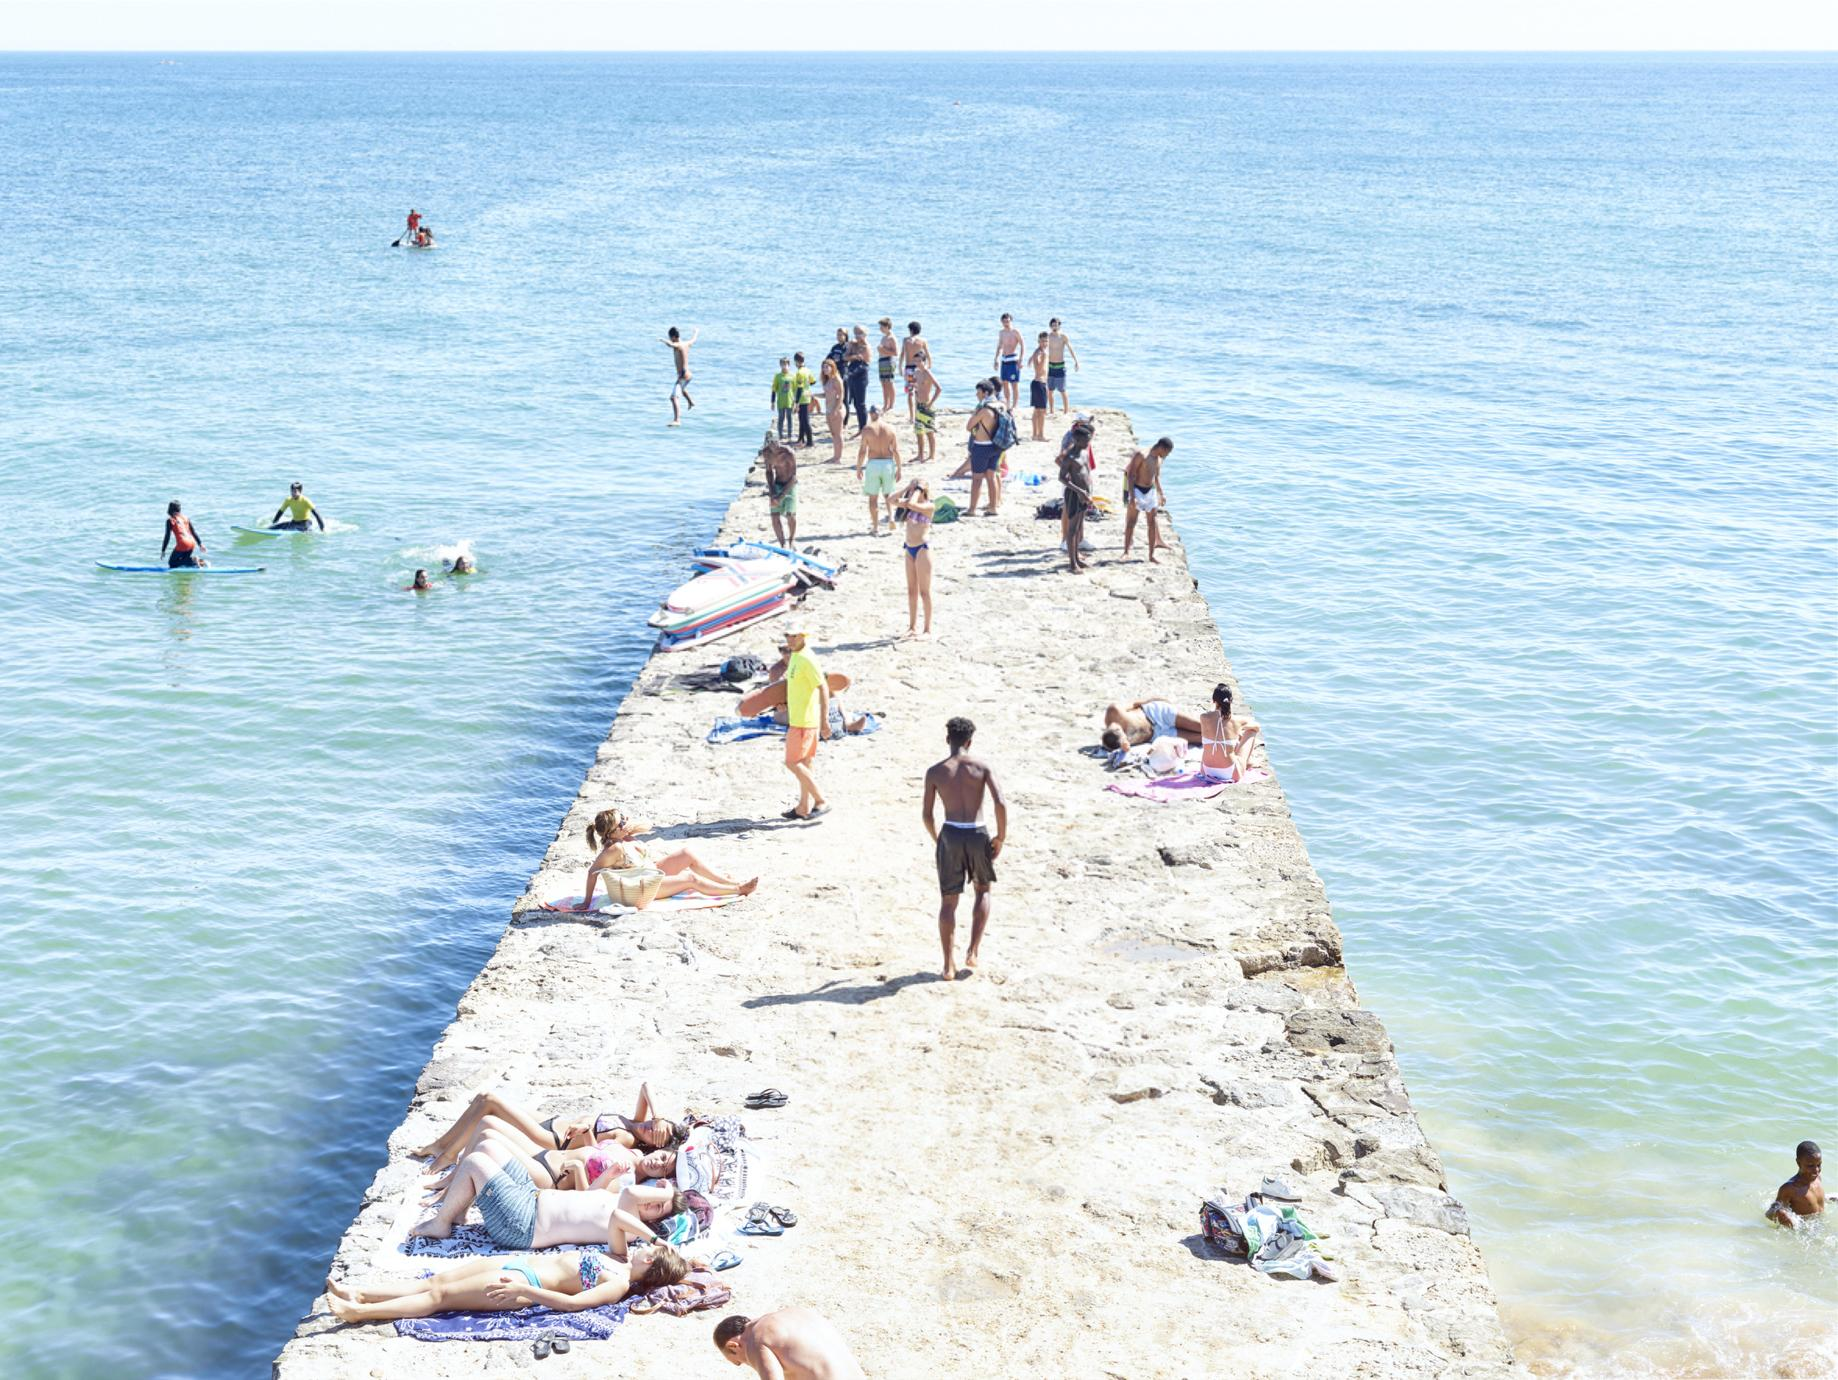 Carcavelos Pier Paddle - framed large scale photograph of summer beach scene